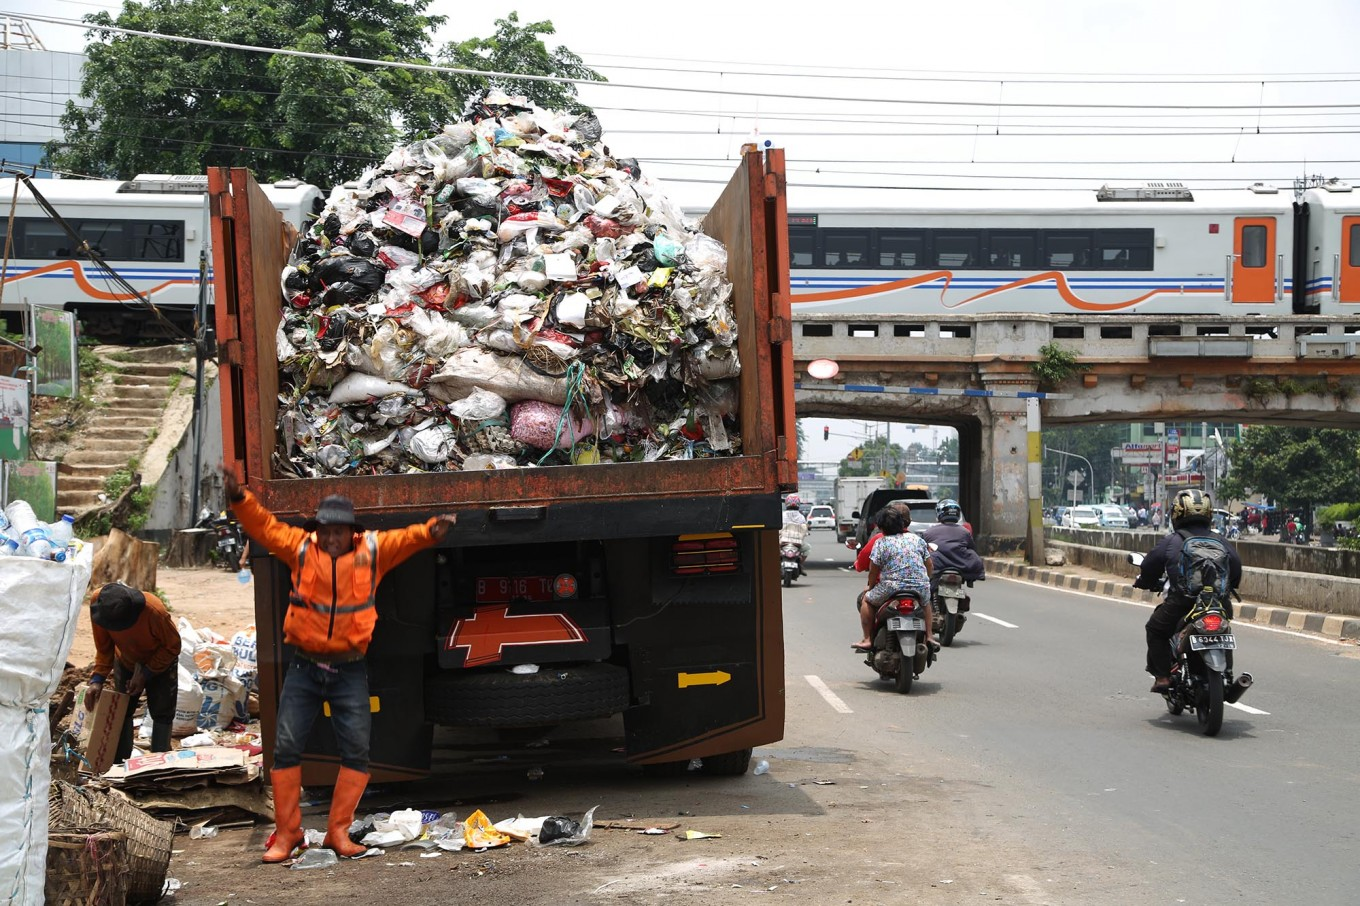 A worker jumps from a garbage truck to collect garbage from Jl. Jatinegara Barat in East Jakarta on Feb. 28, 2017. (JP/PJ Leo)